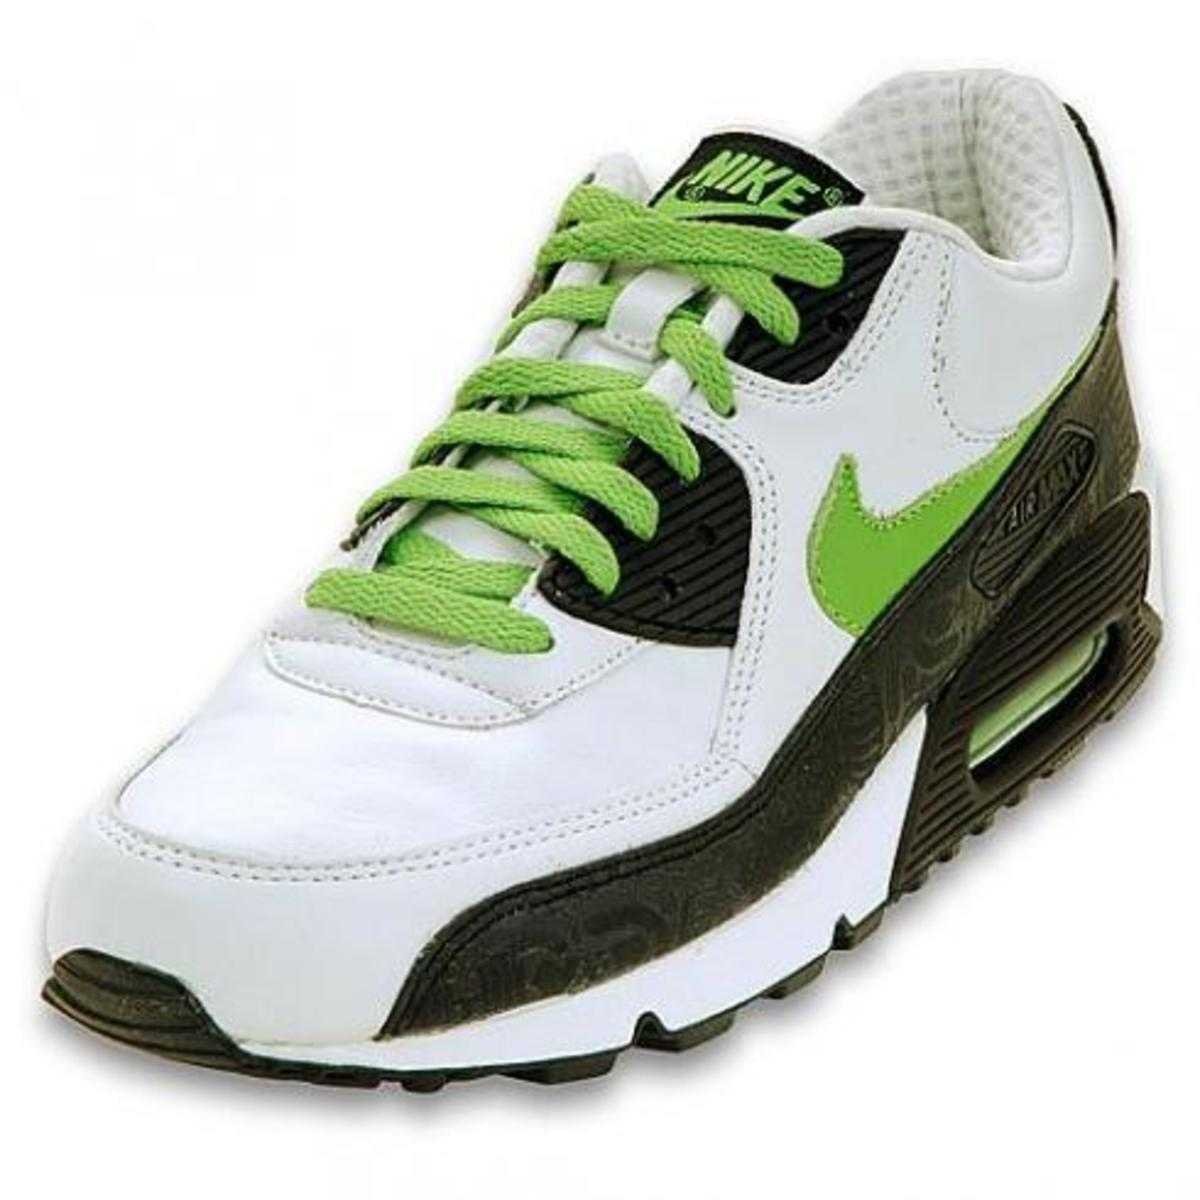 Air Max 90, 97 + 360 Rejuvenation - 2